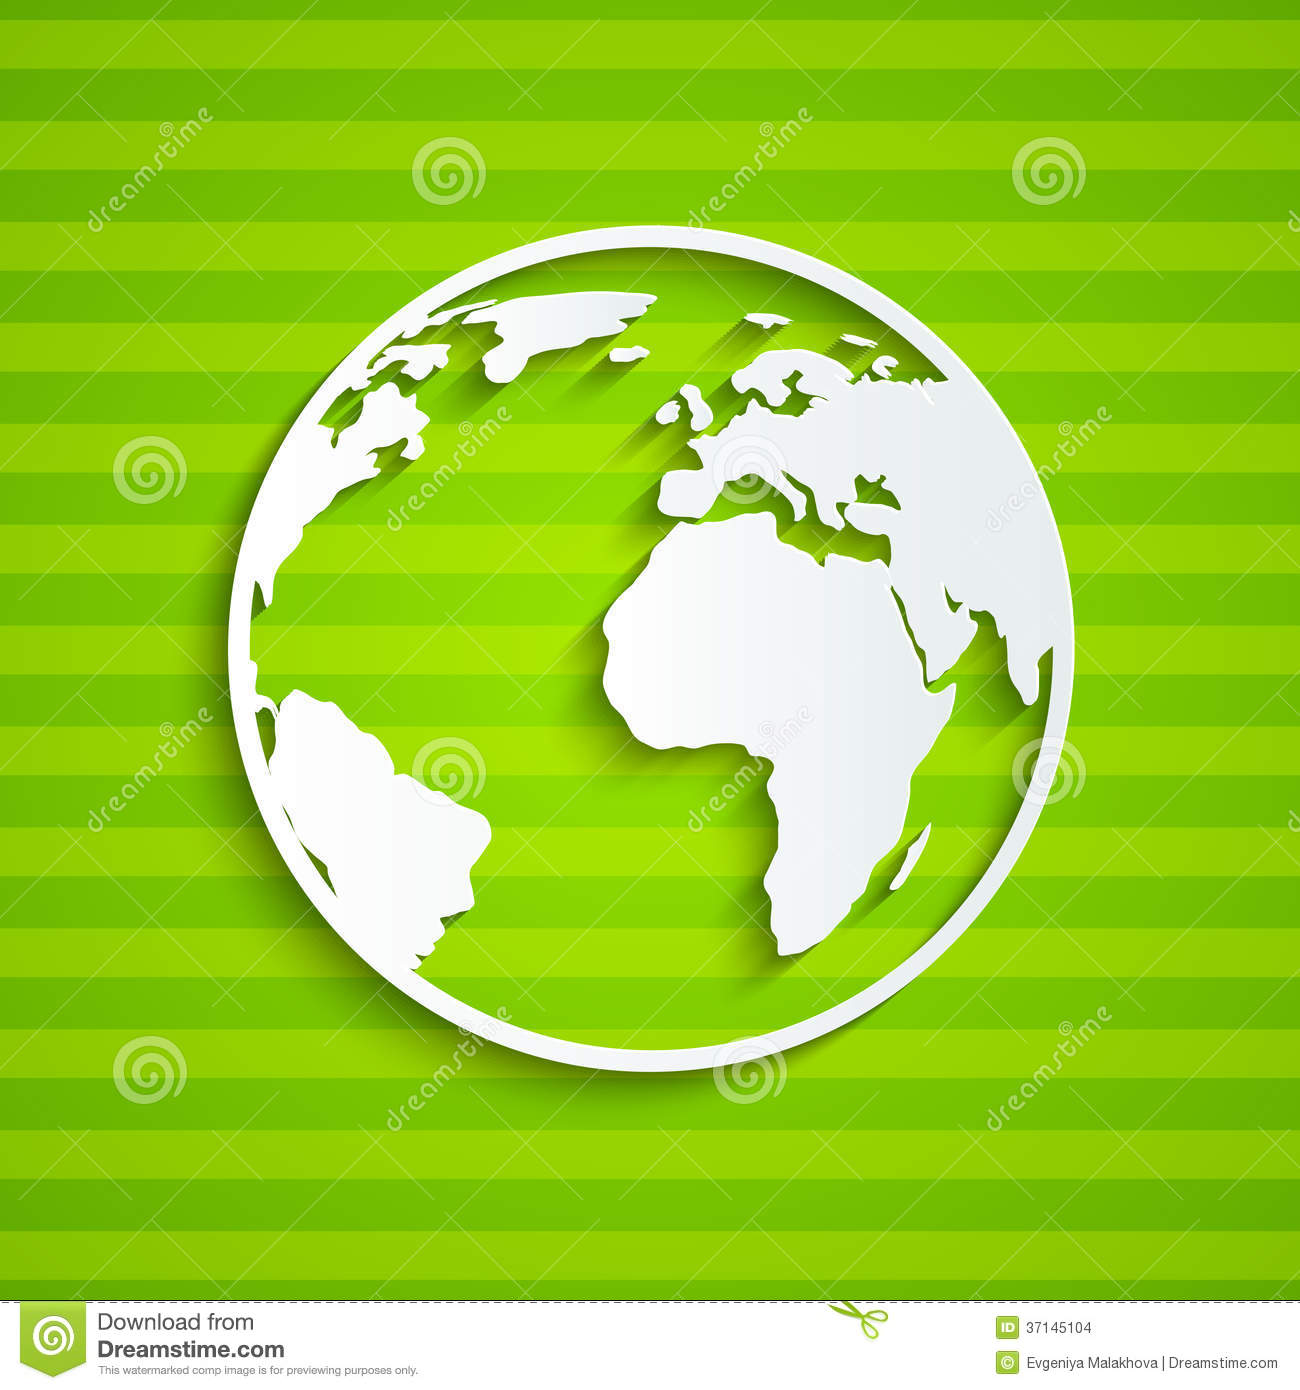 green earth-essays Mother save green earth essays energy on through the blind side essay on racism in schools vg wort dissertation anmelden bei.